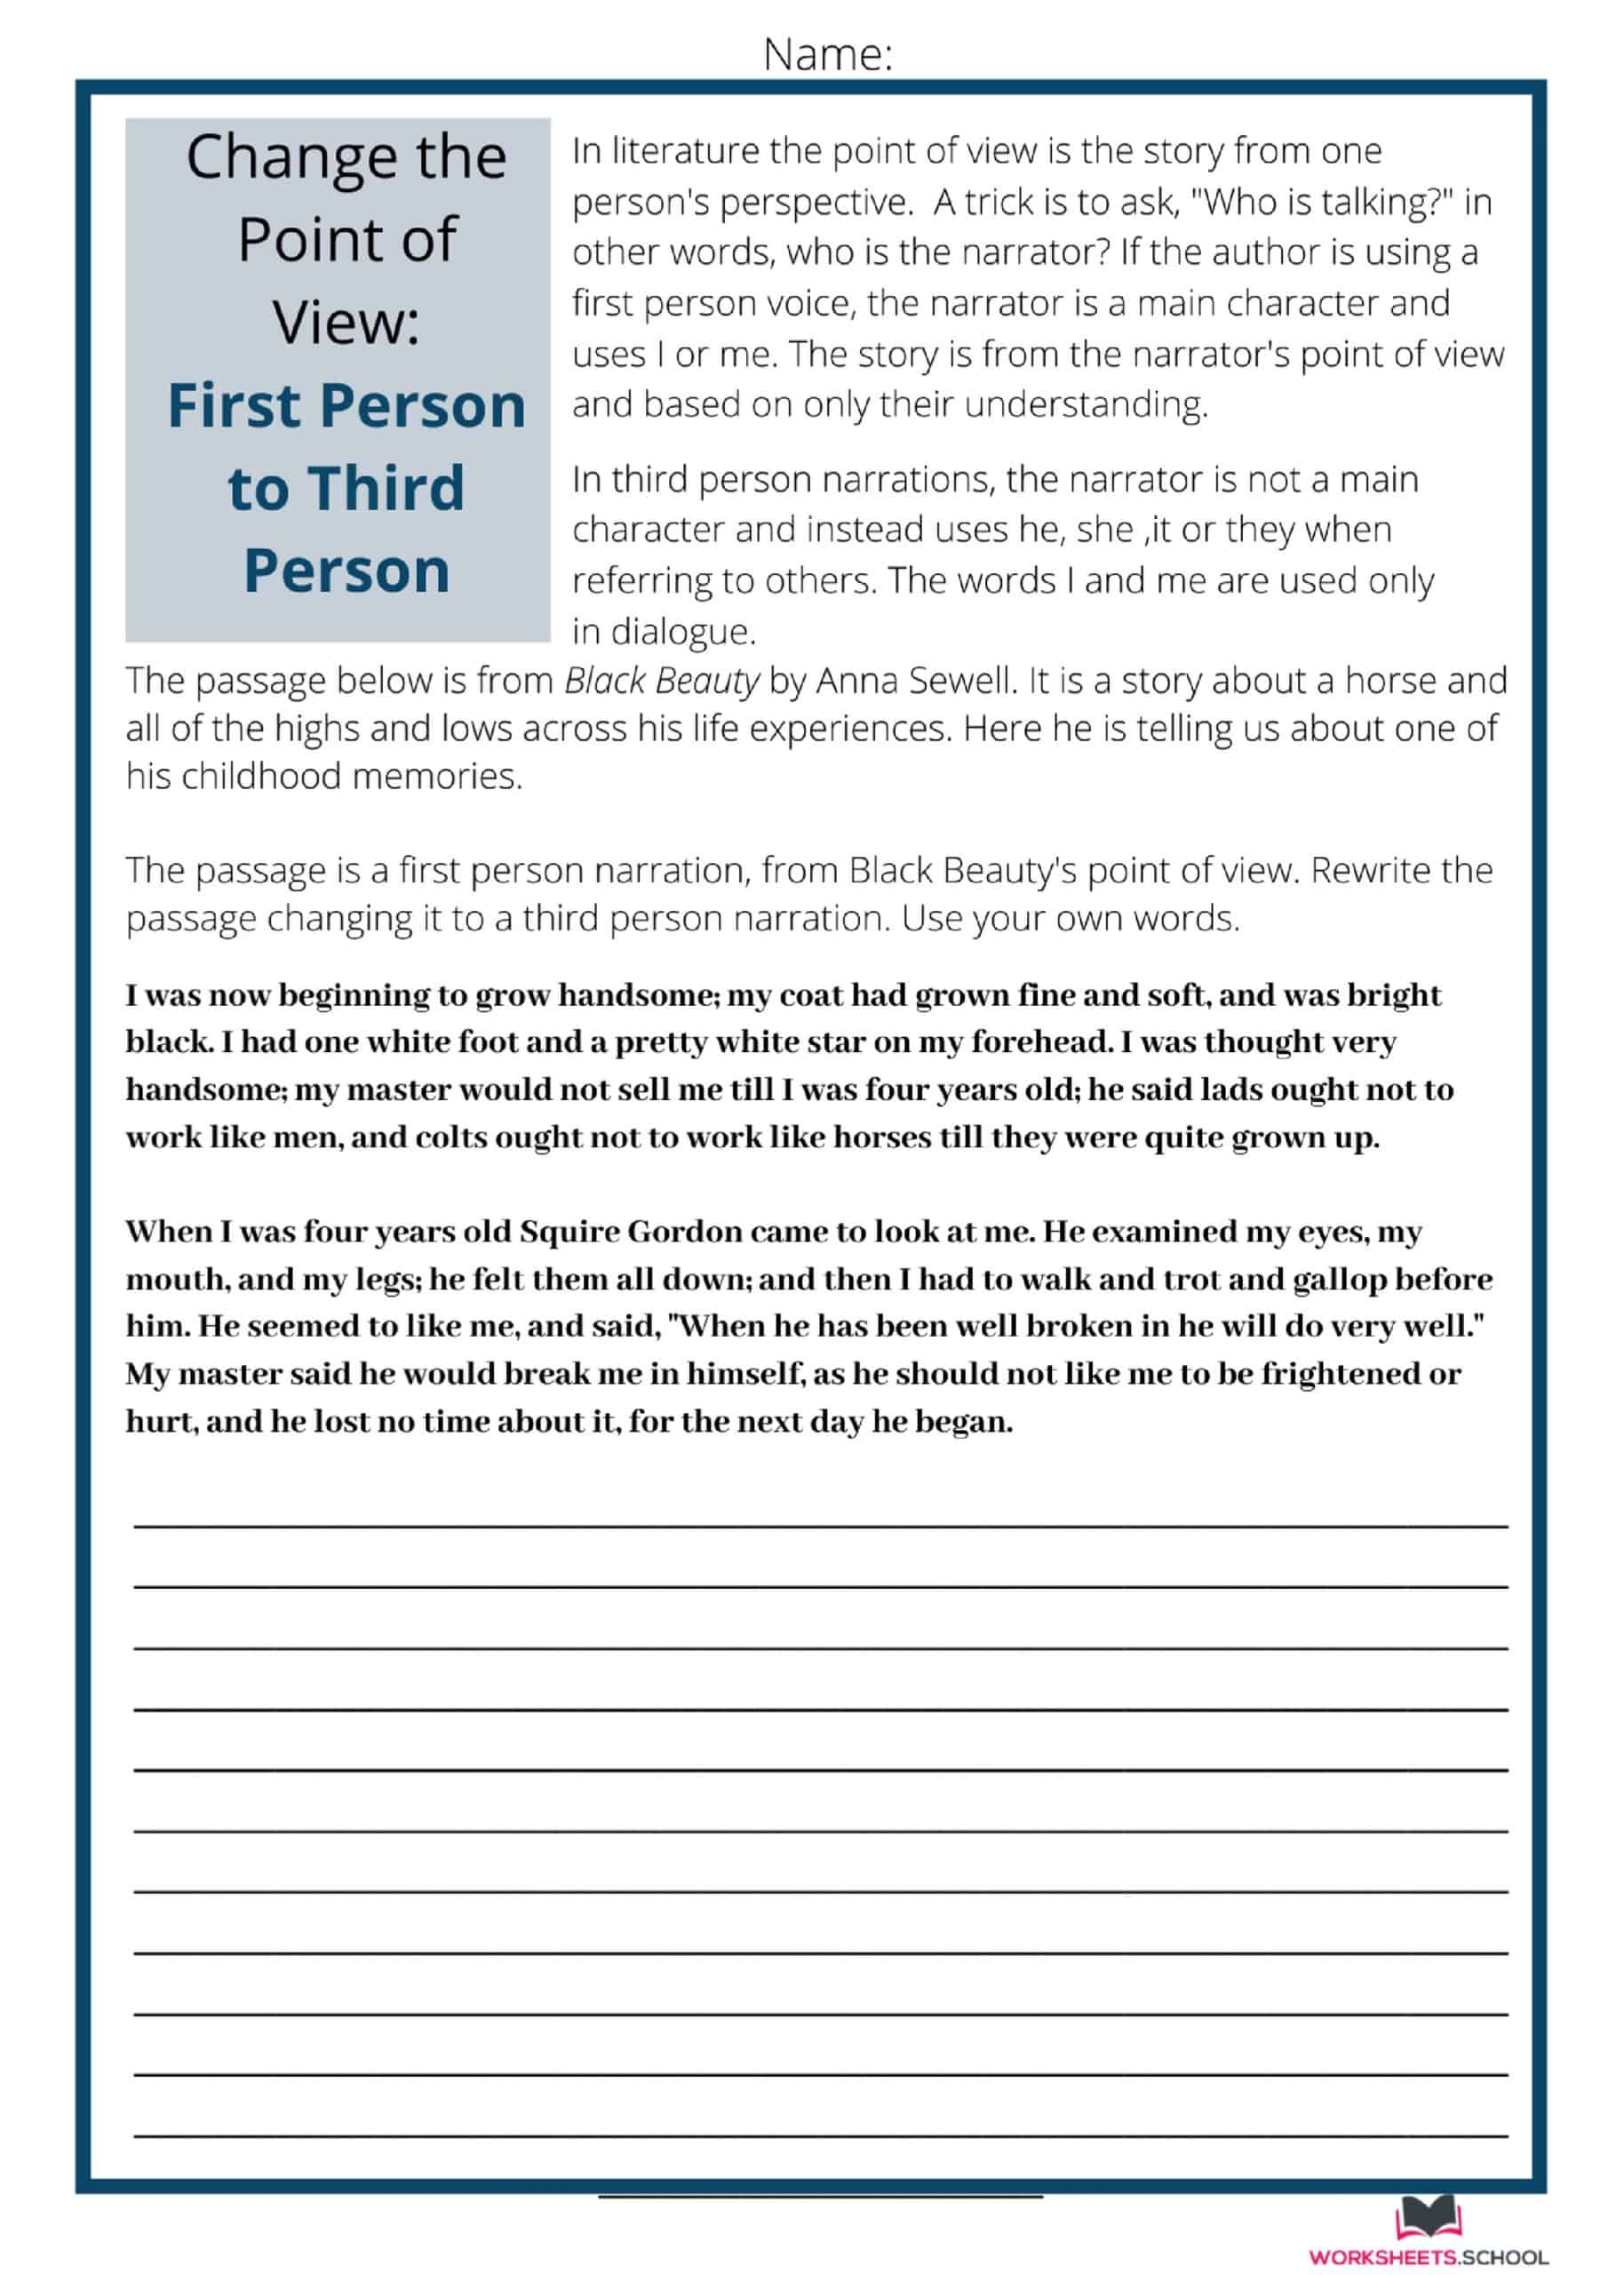 Change the Point of View Worksheet - FP to TP-Black Beauty